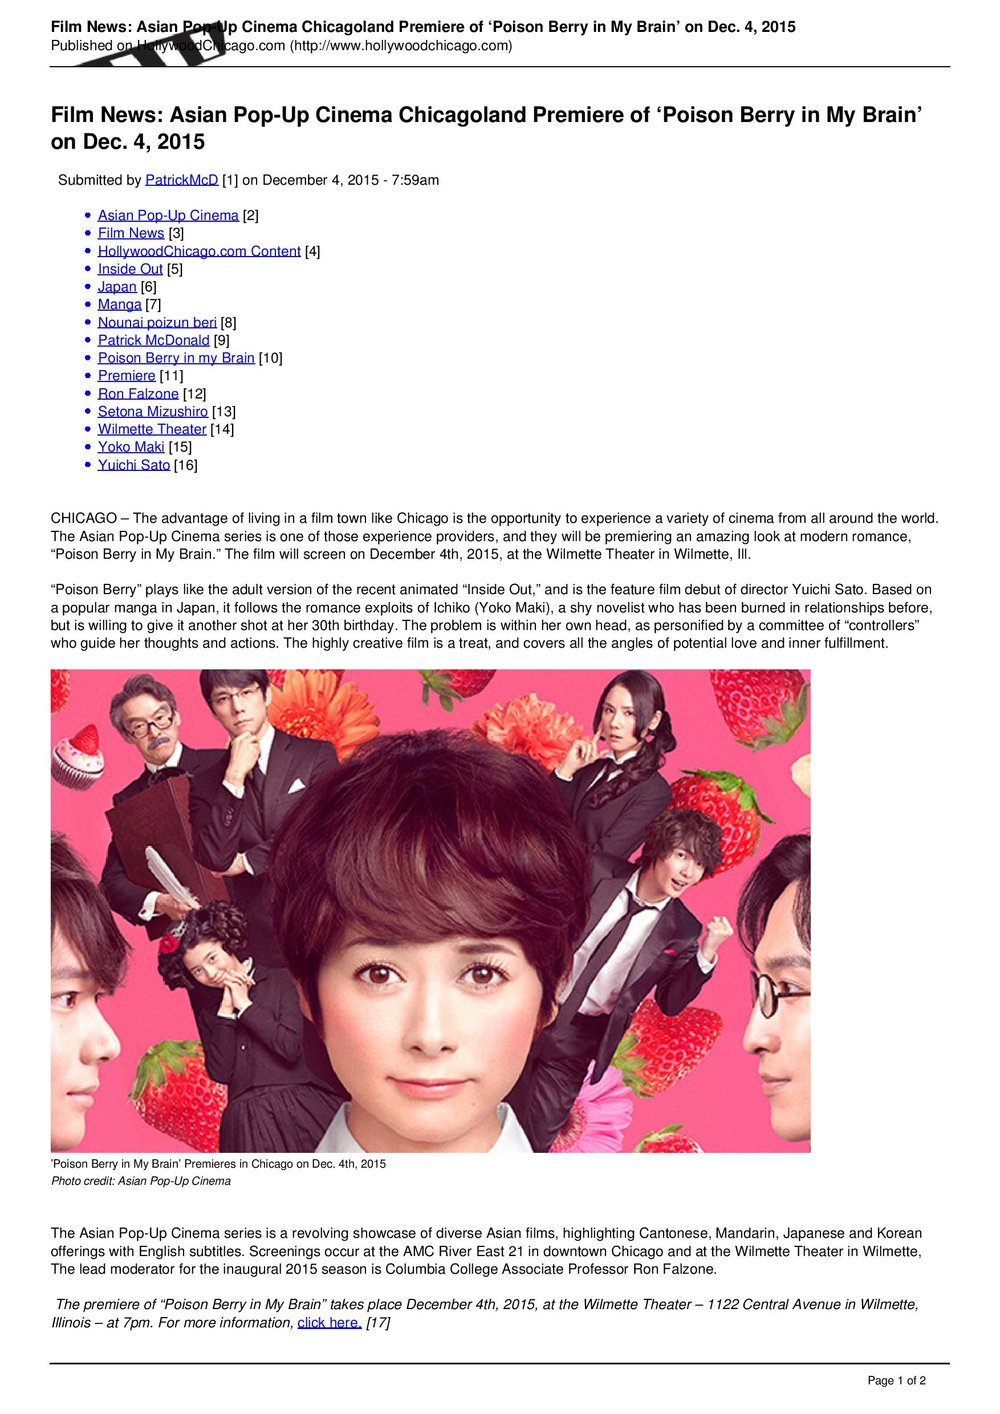 HollywoodChicago.com_-_Film_News_Asian_Pop-Up_Cinema_Chicagoland_Premiere_of_Poison_Berry_in_My_Brain_on_Dec._4_2015_-_2015-12-04-page-001.jpg